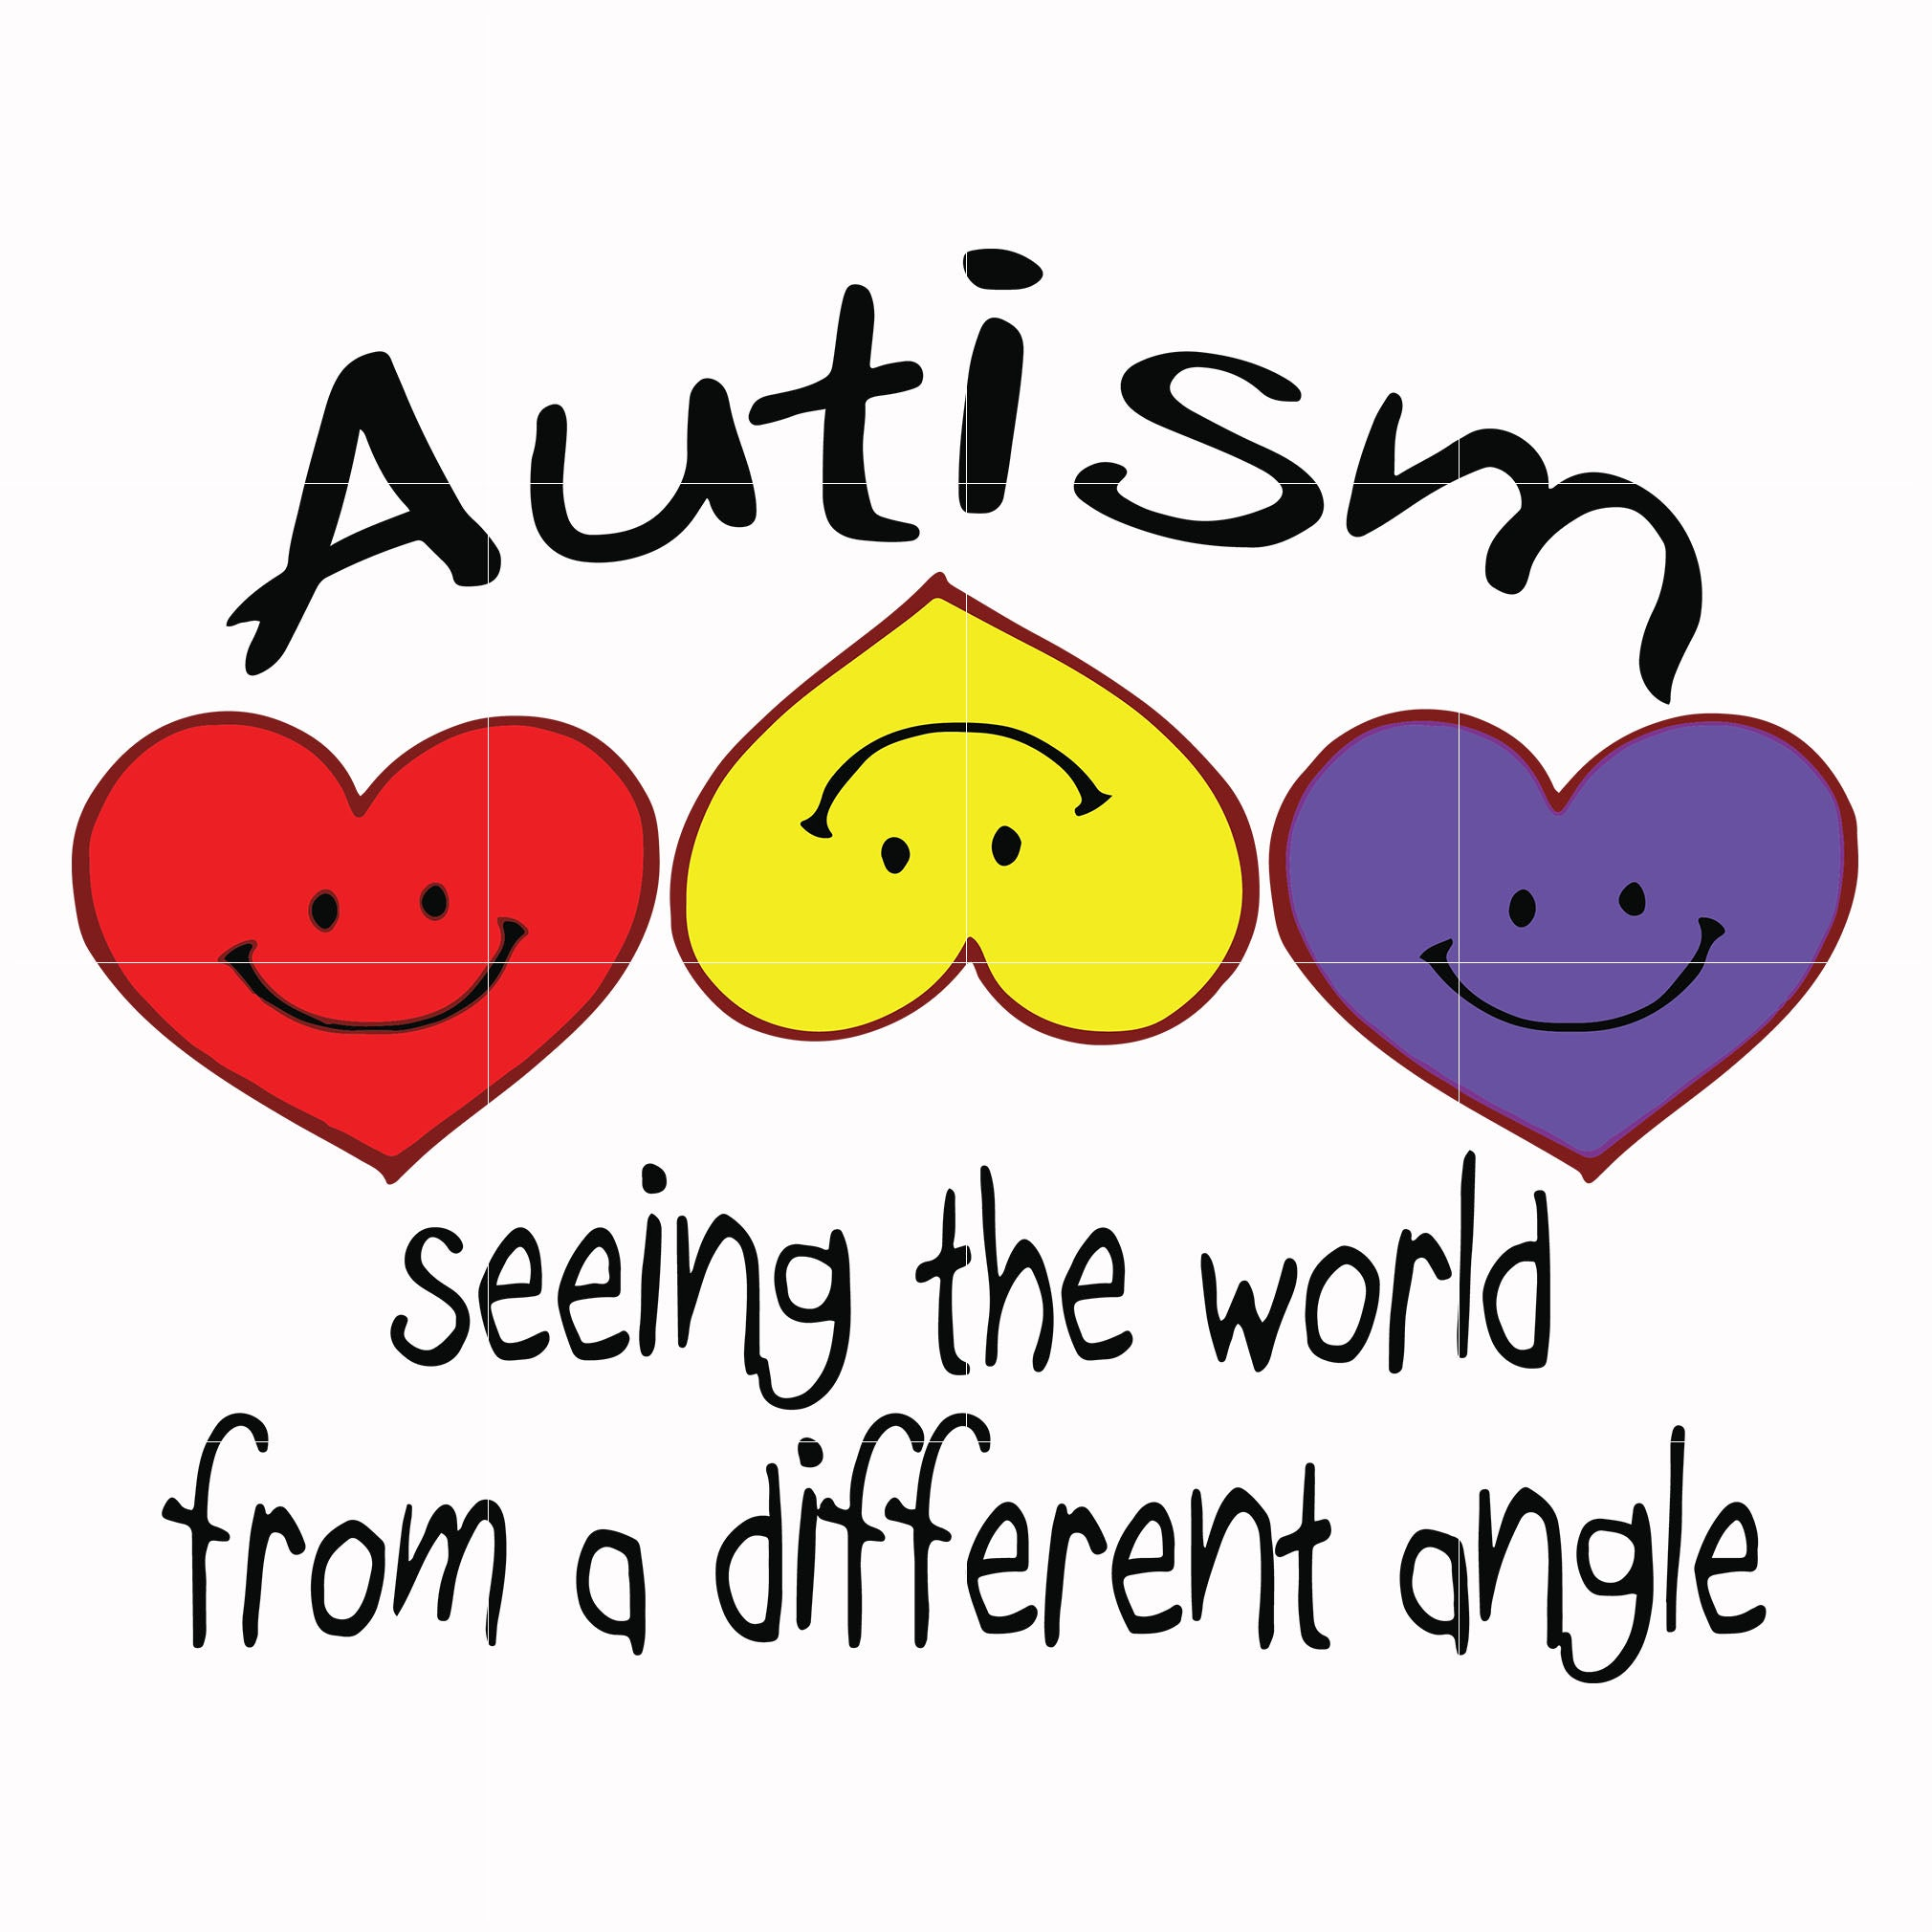 Autism seeing the word from a different angle svg, autism svg, autism awareness svg, dxf, eps, png digital file